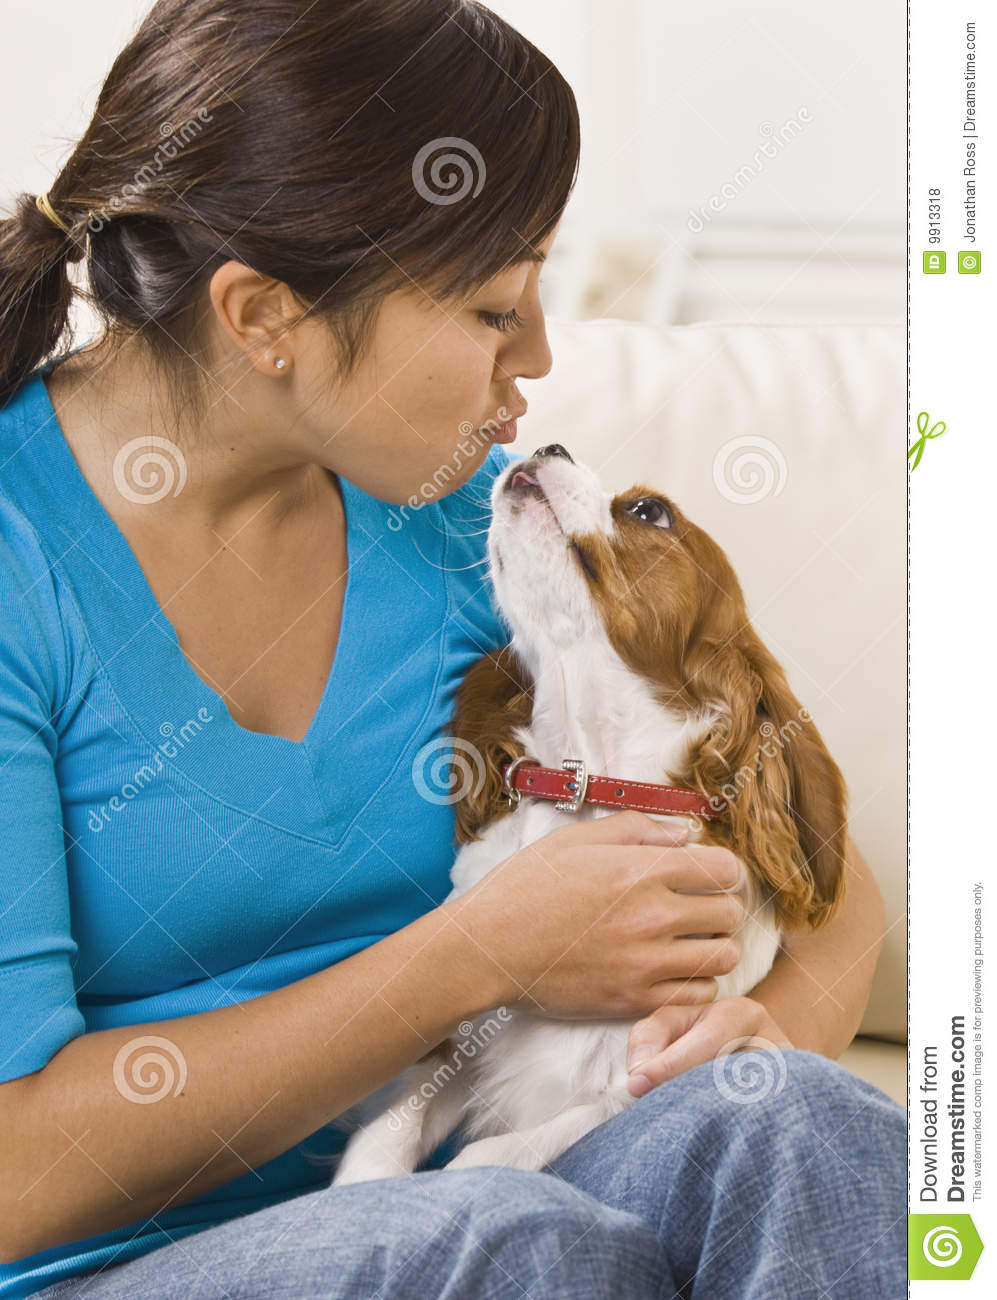 Woman Kissing Dog Stock Photo Image Of American Puppy 9913318